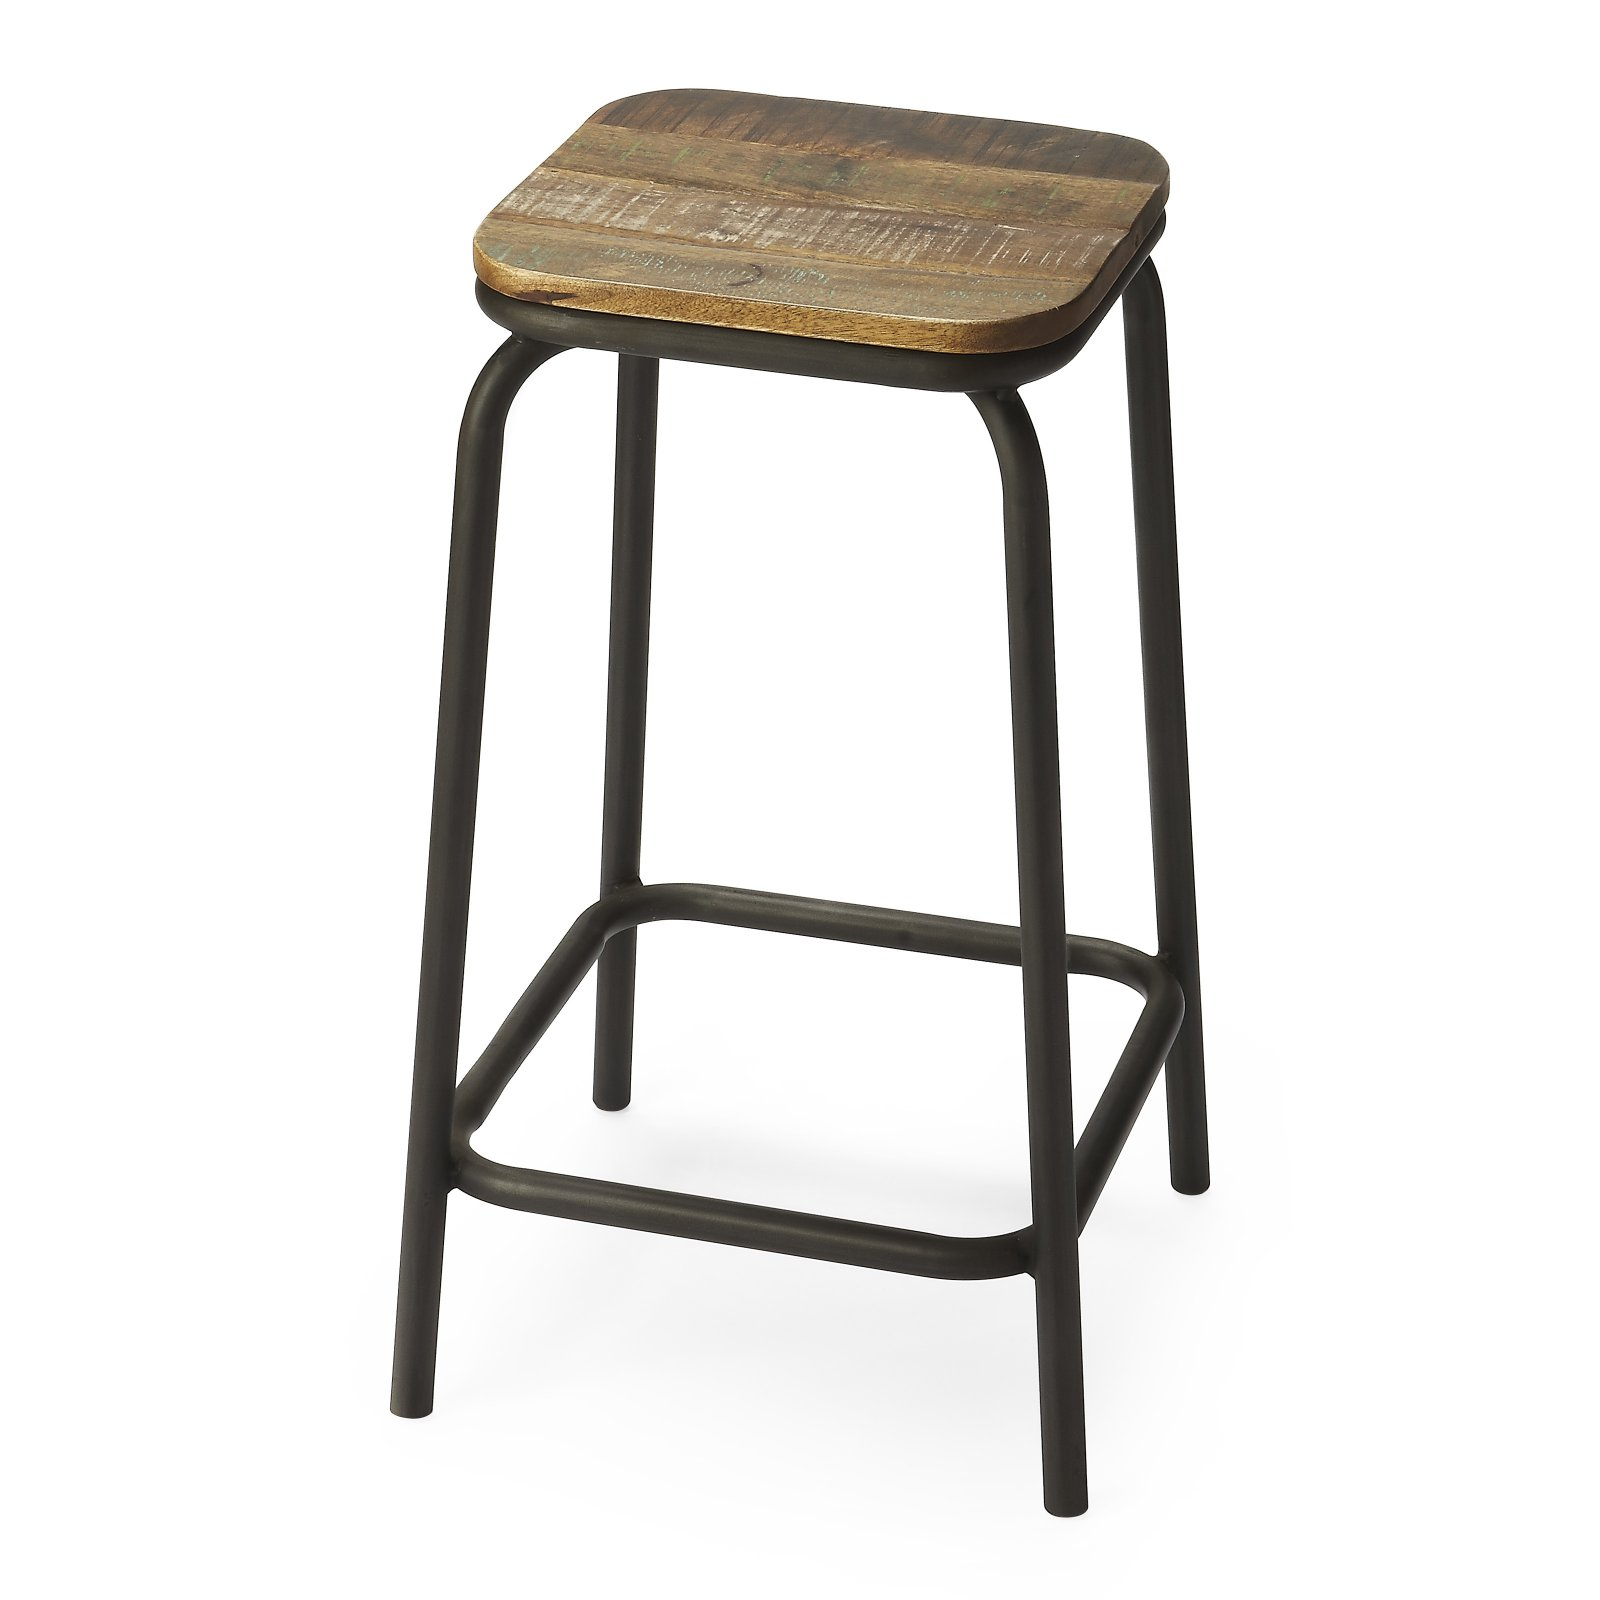 Awe Inspiring Butler Specialty Davis Industrial Chic 25 In Bar Stool In Unemploymentrelief Wooden Chair Designs For Living Room Unemploymentrelieforg